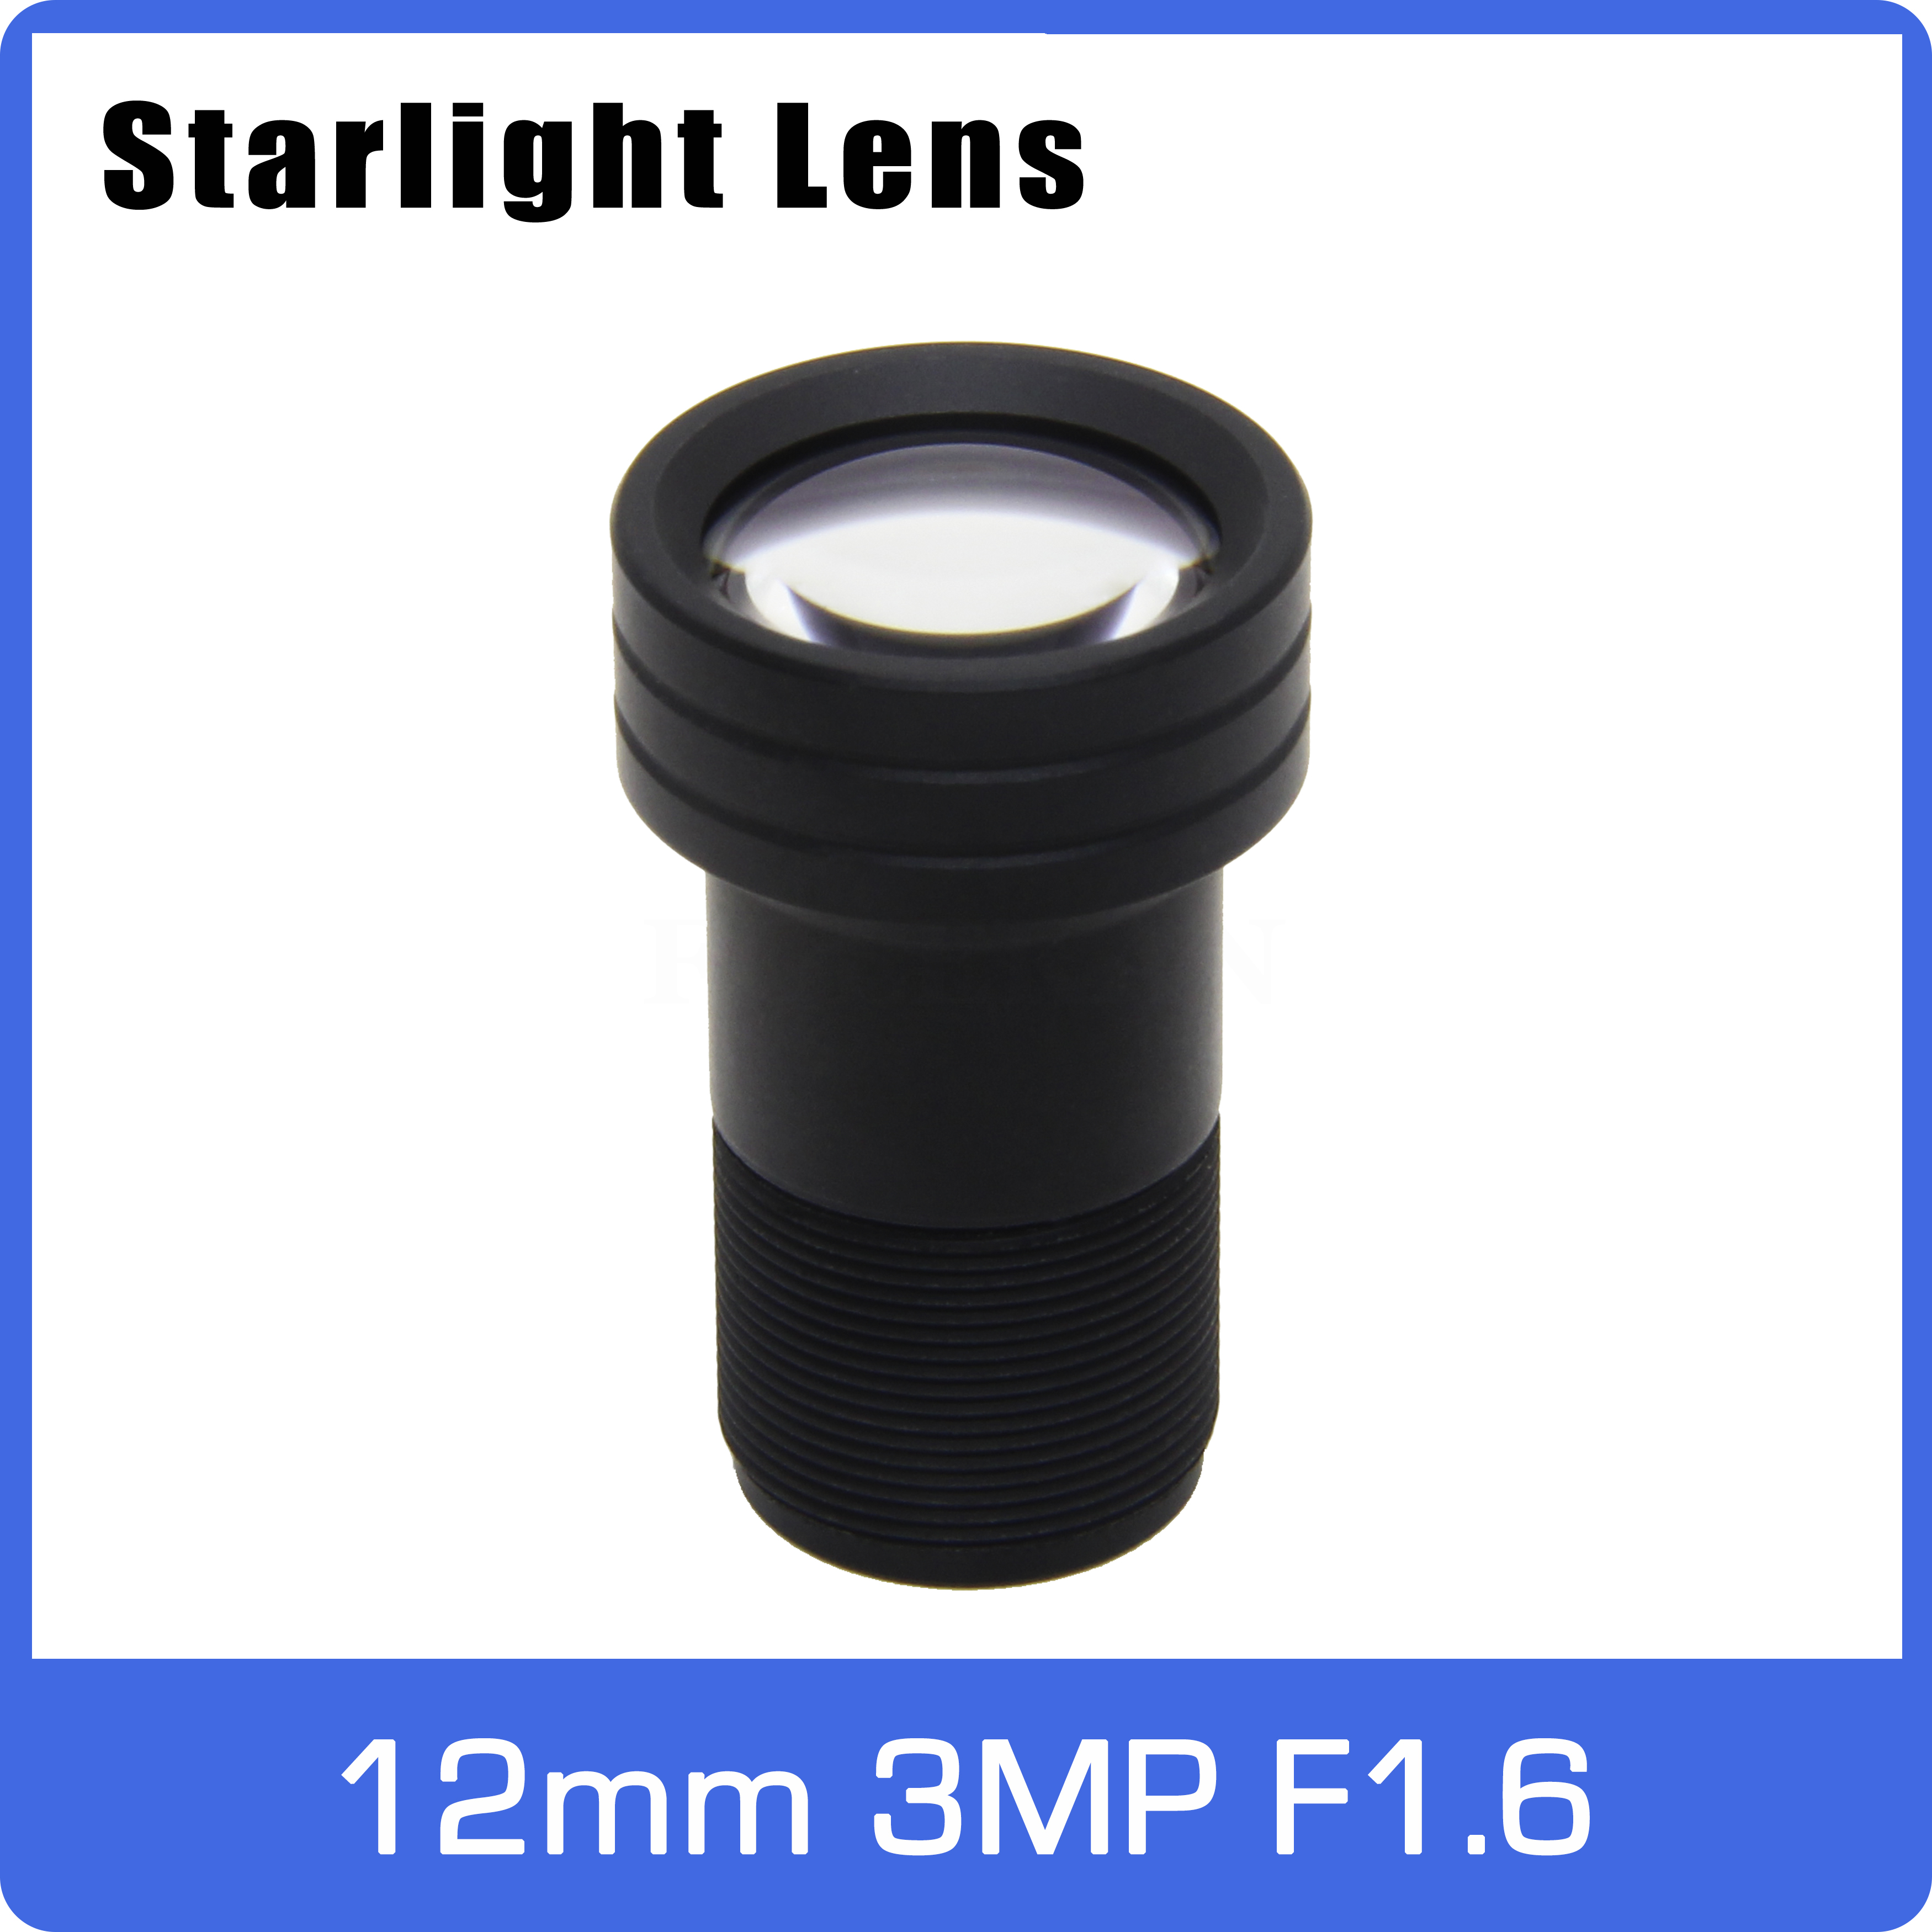 Starlight Lens 3MP 12mm Fixed Aperture F1.6 Big Angle For SONY IMX290/291/307/327 Low Light CCTV AHD IP Camera Free Shipping